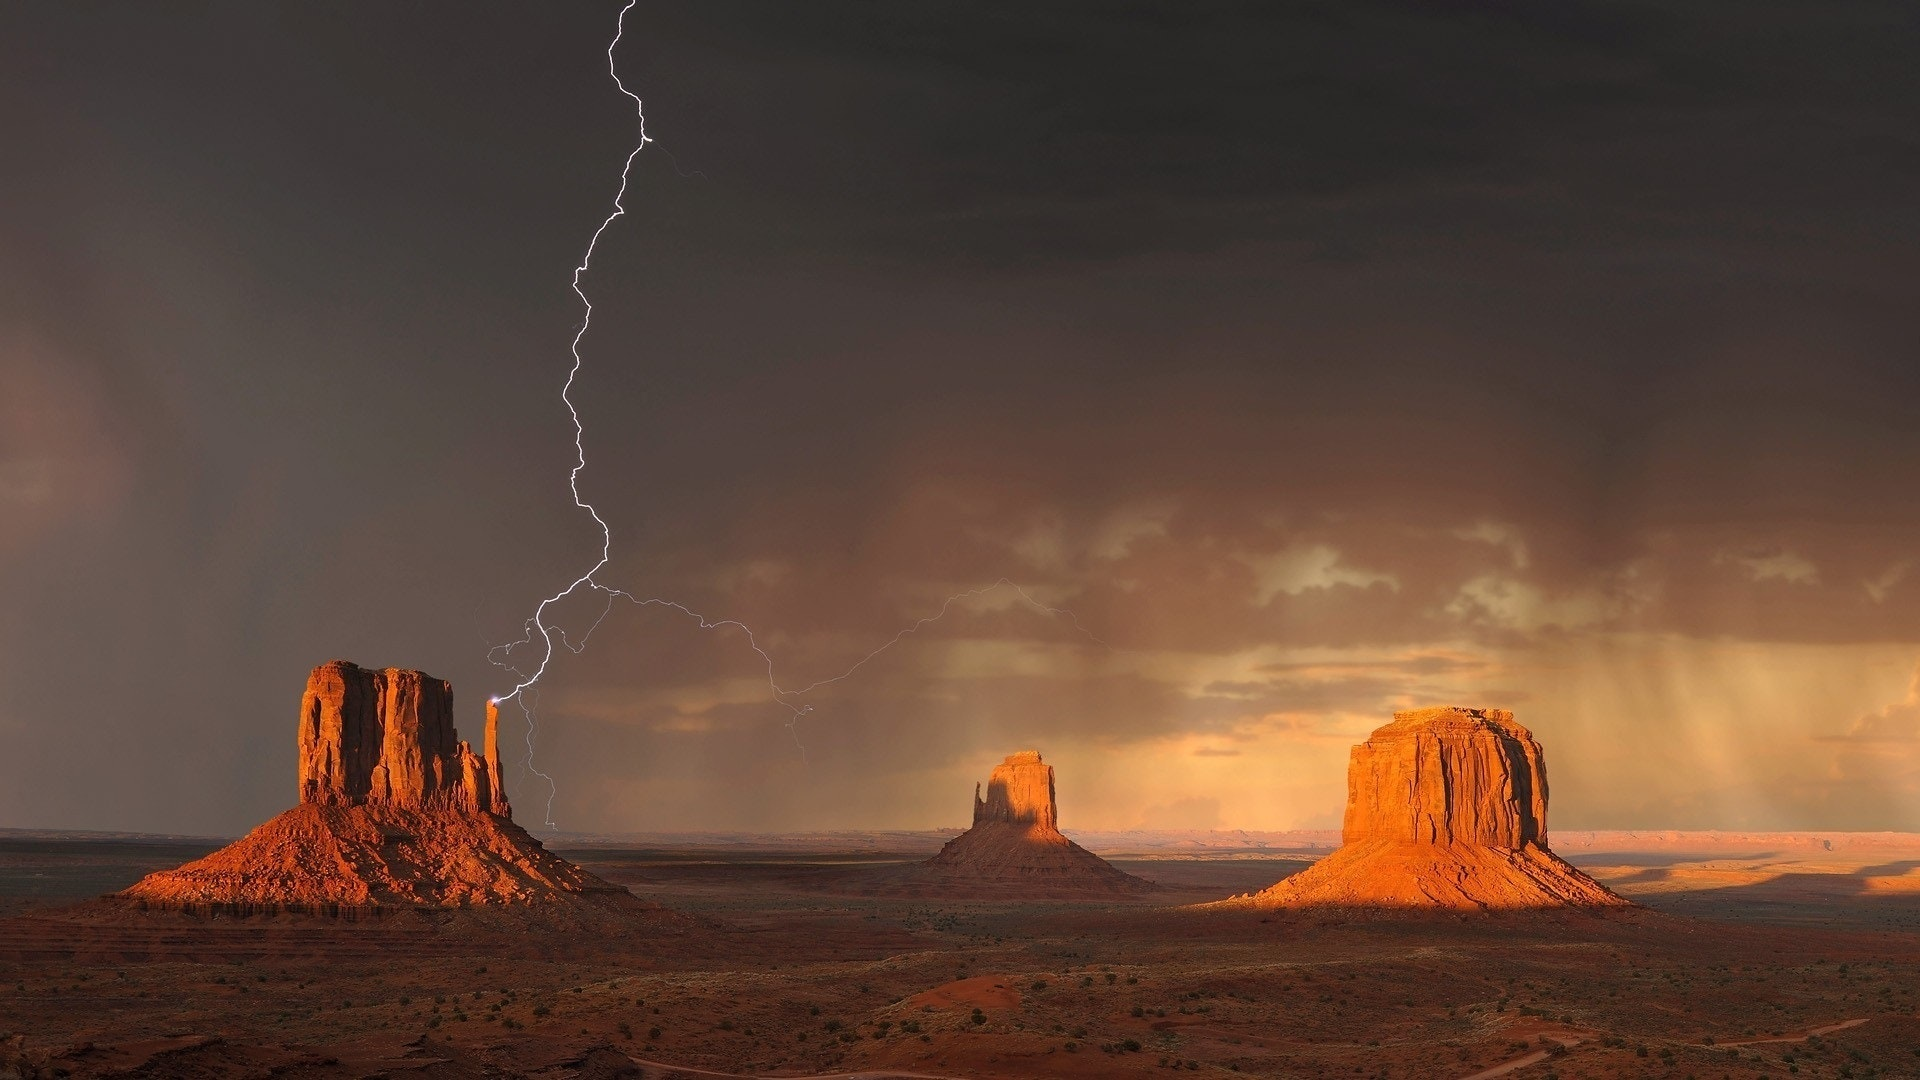 A lightning bolt strikes a rock formation in the desert